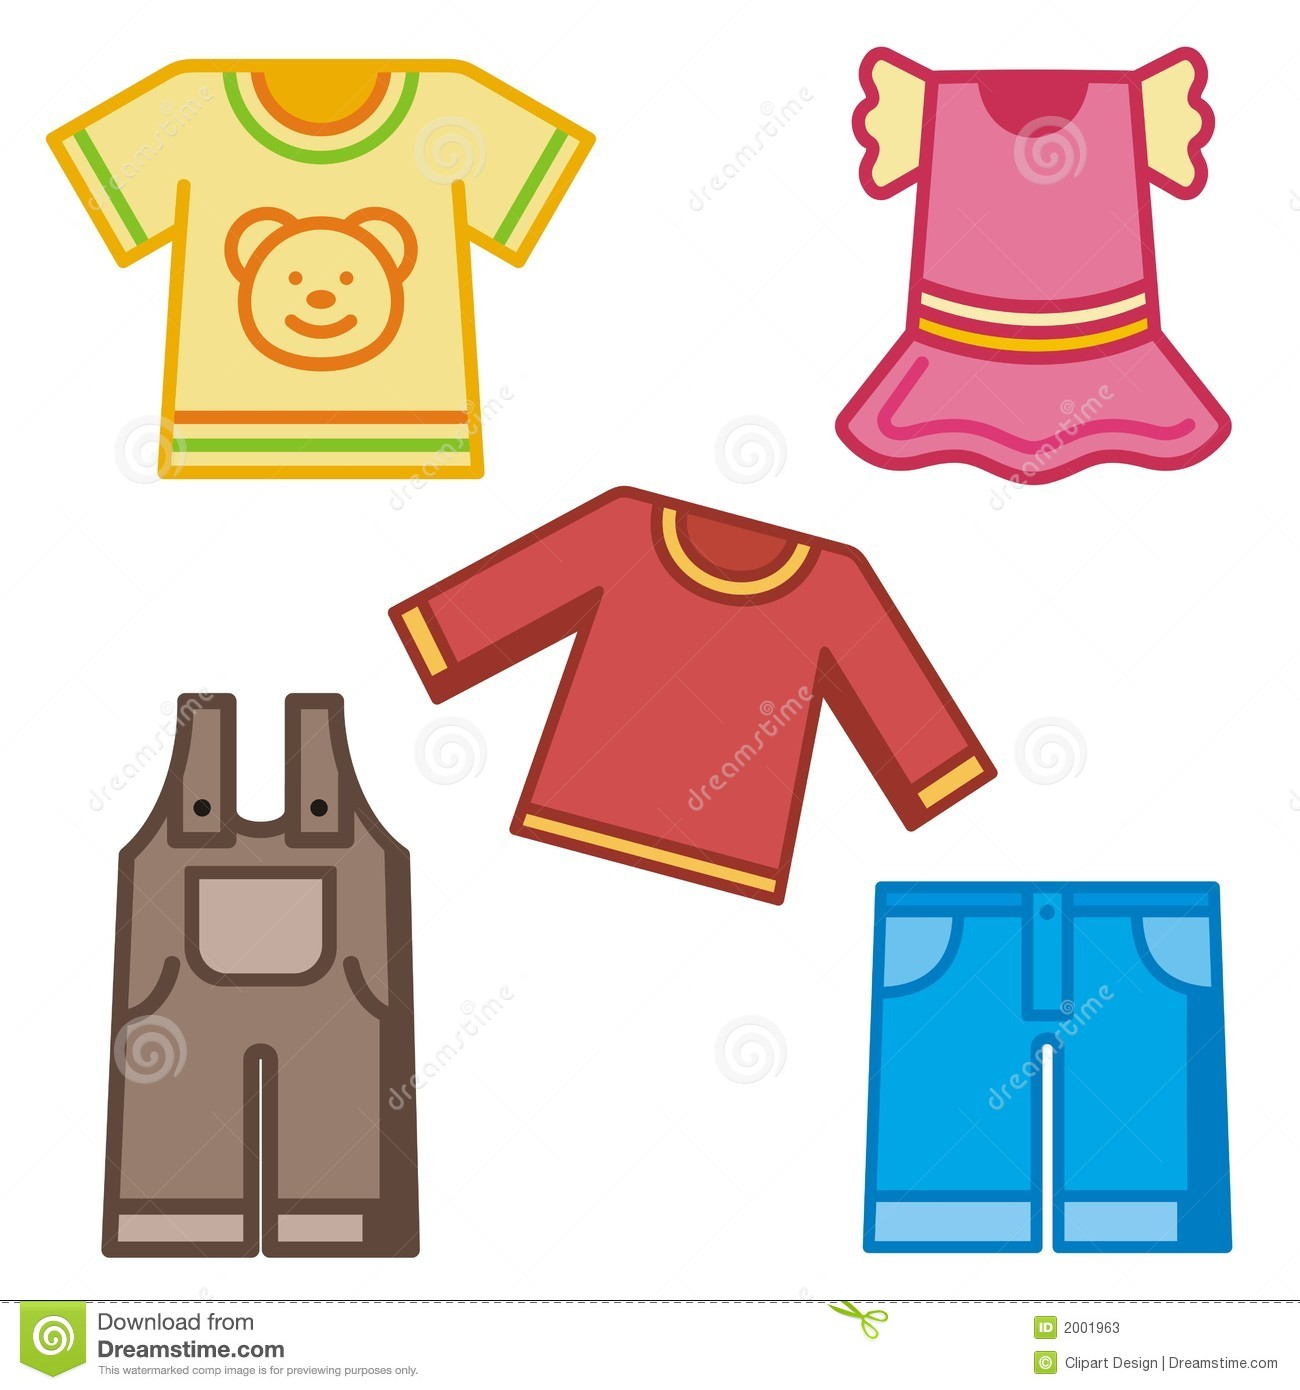 Clothing Clipart & Clothing Clip Art Images.